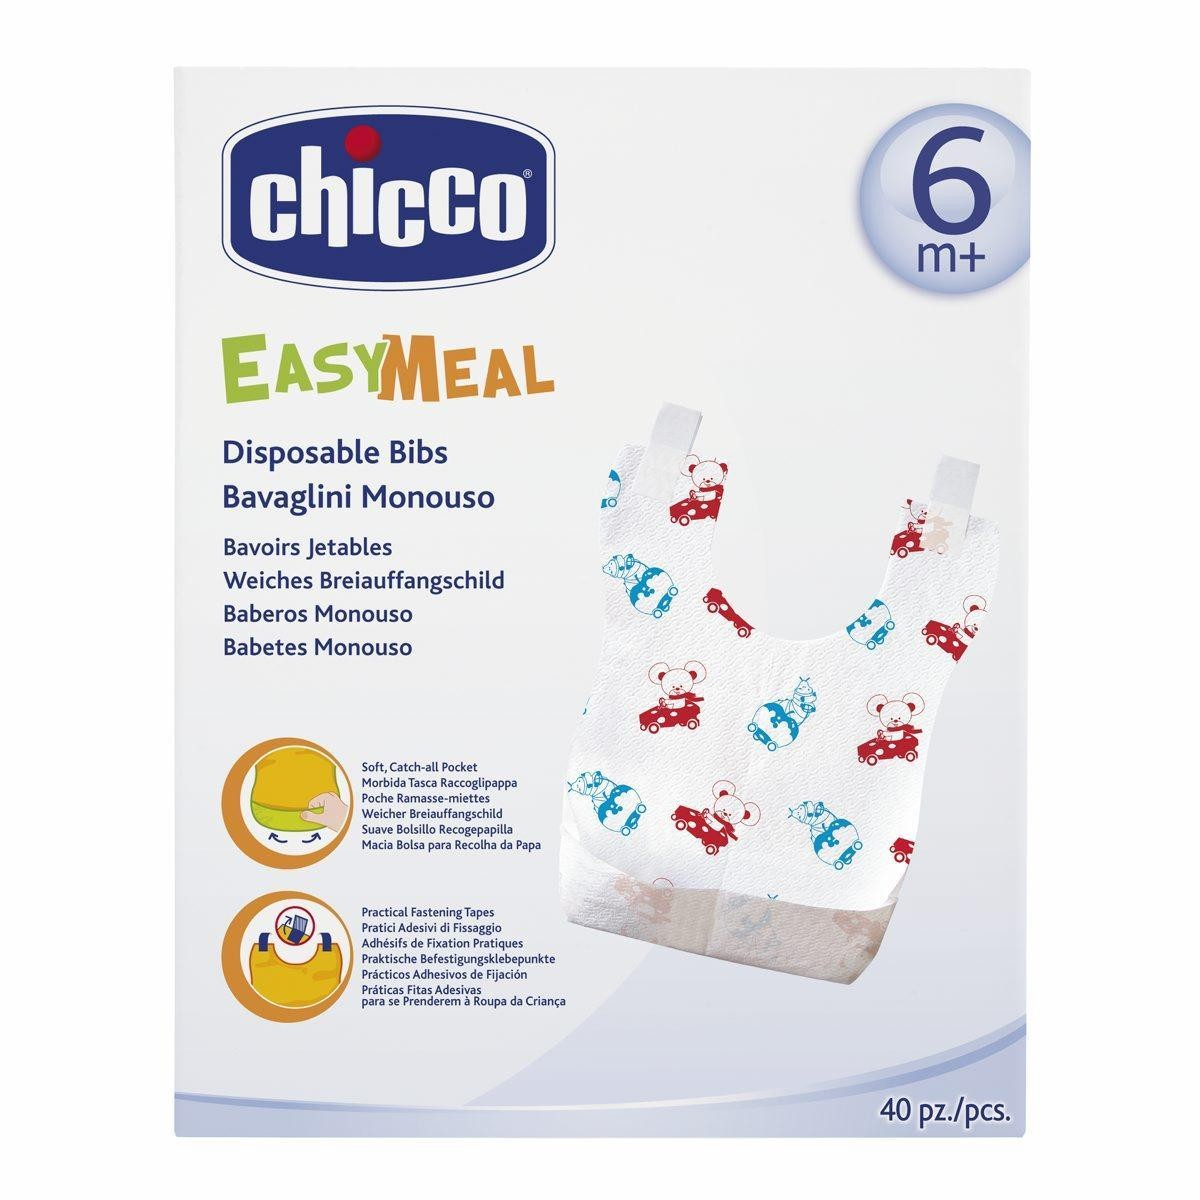 ��������� Chicco ����������� 40 �� � �������� � ��������� (� 6 ���)